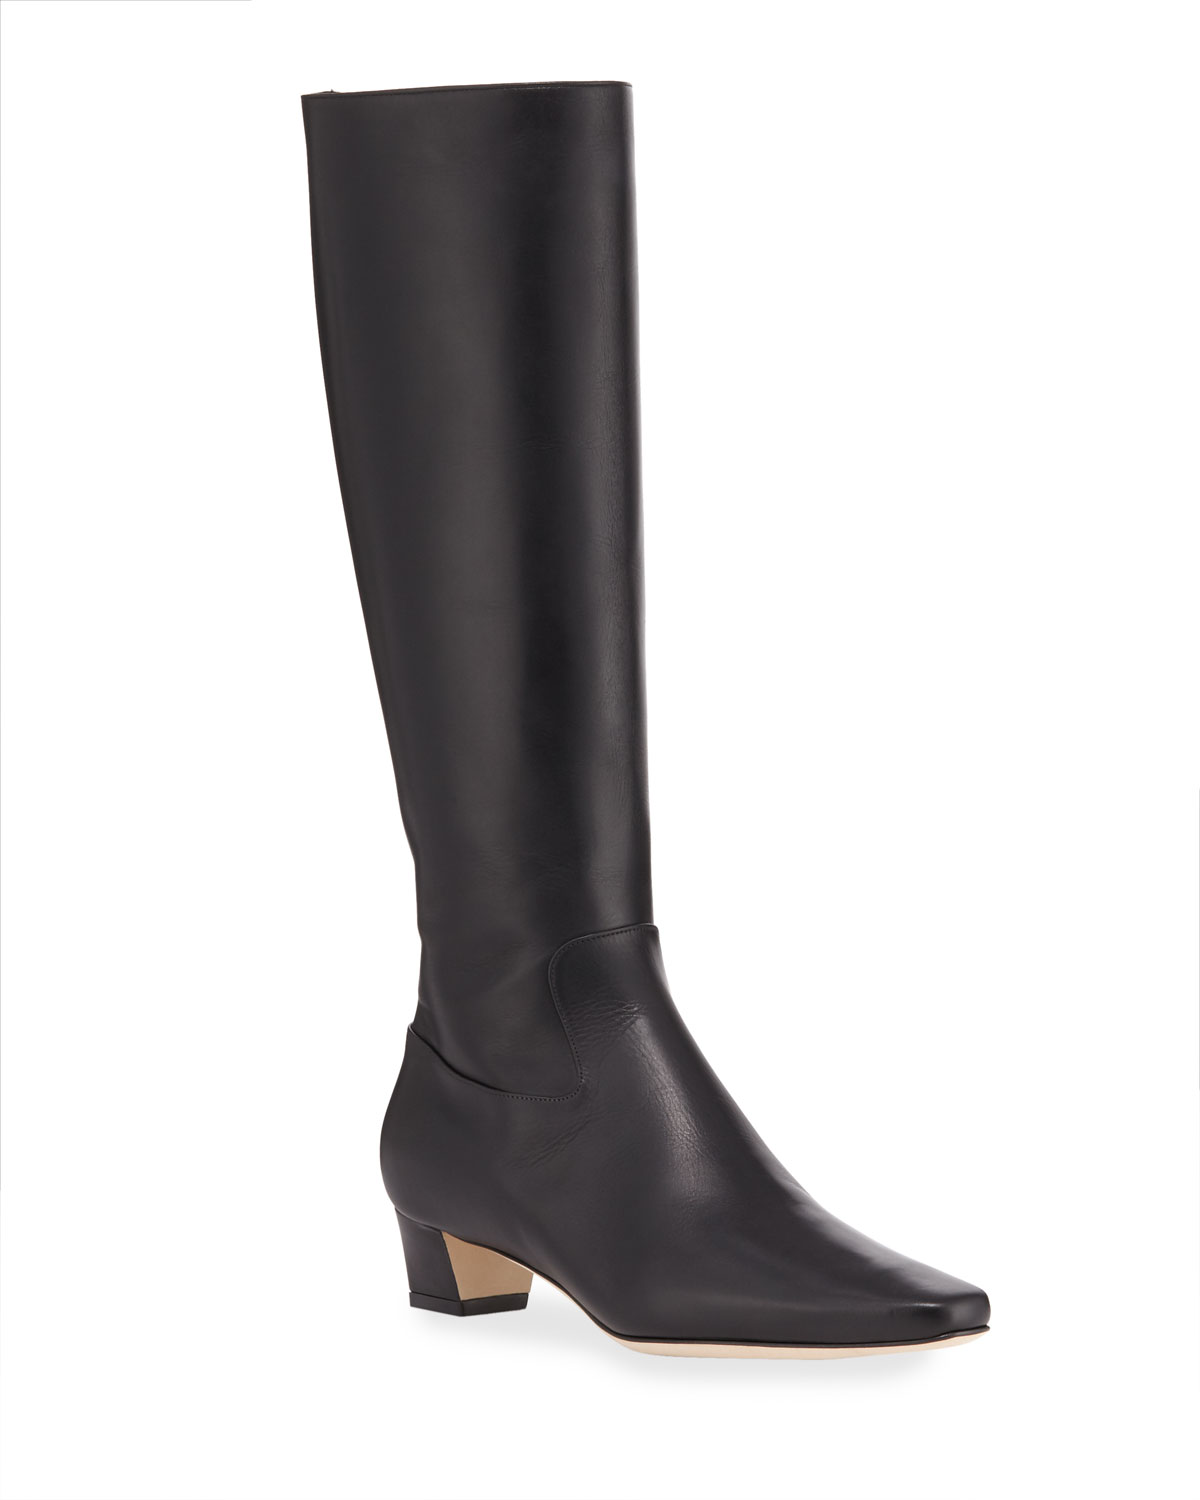 Theseus Leather Knee Boots